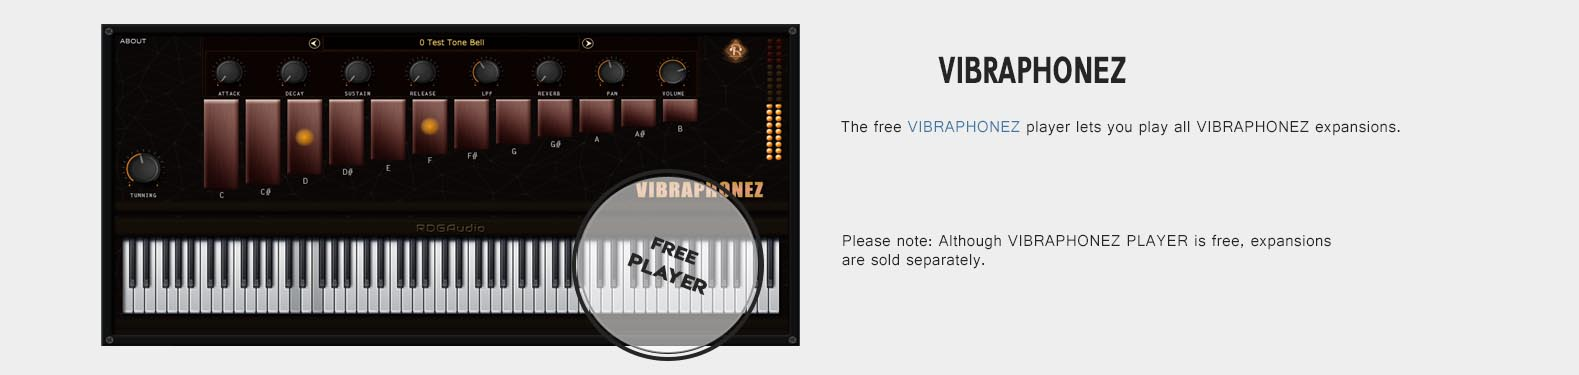 RDGAudio Vibraphonez Player